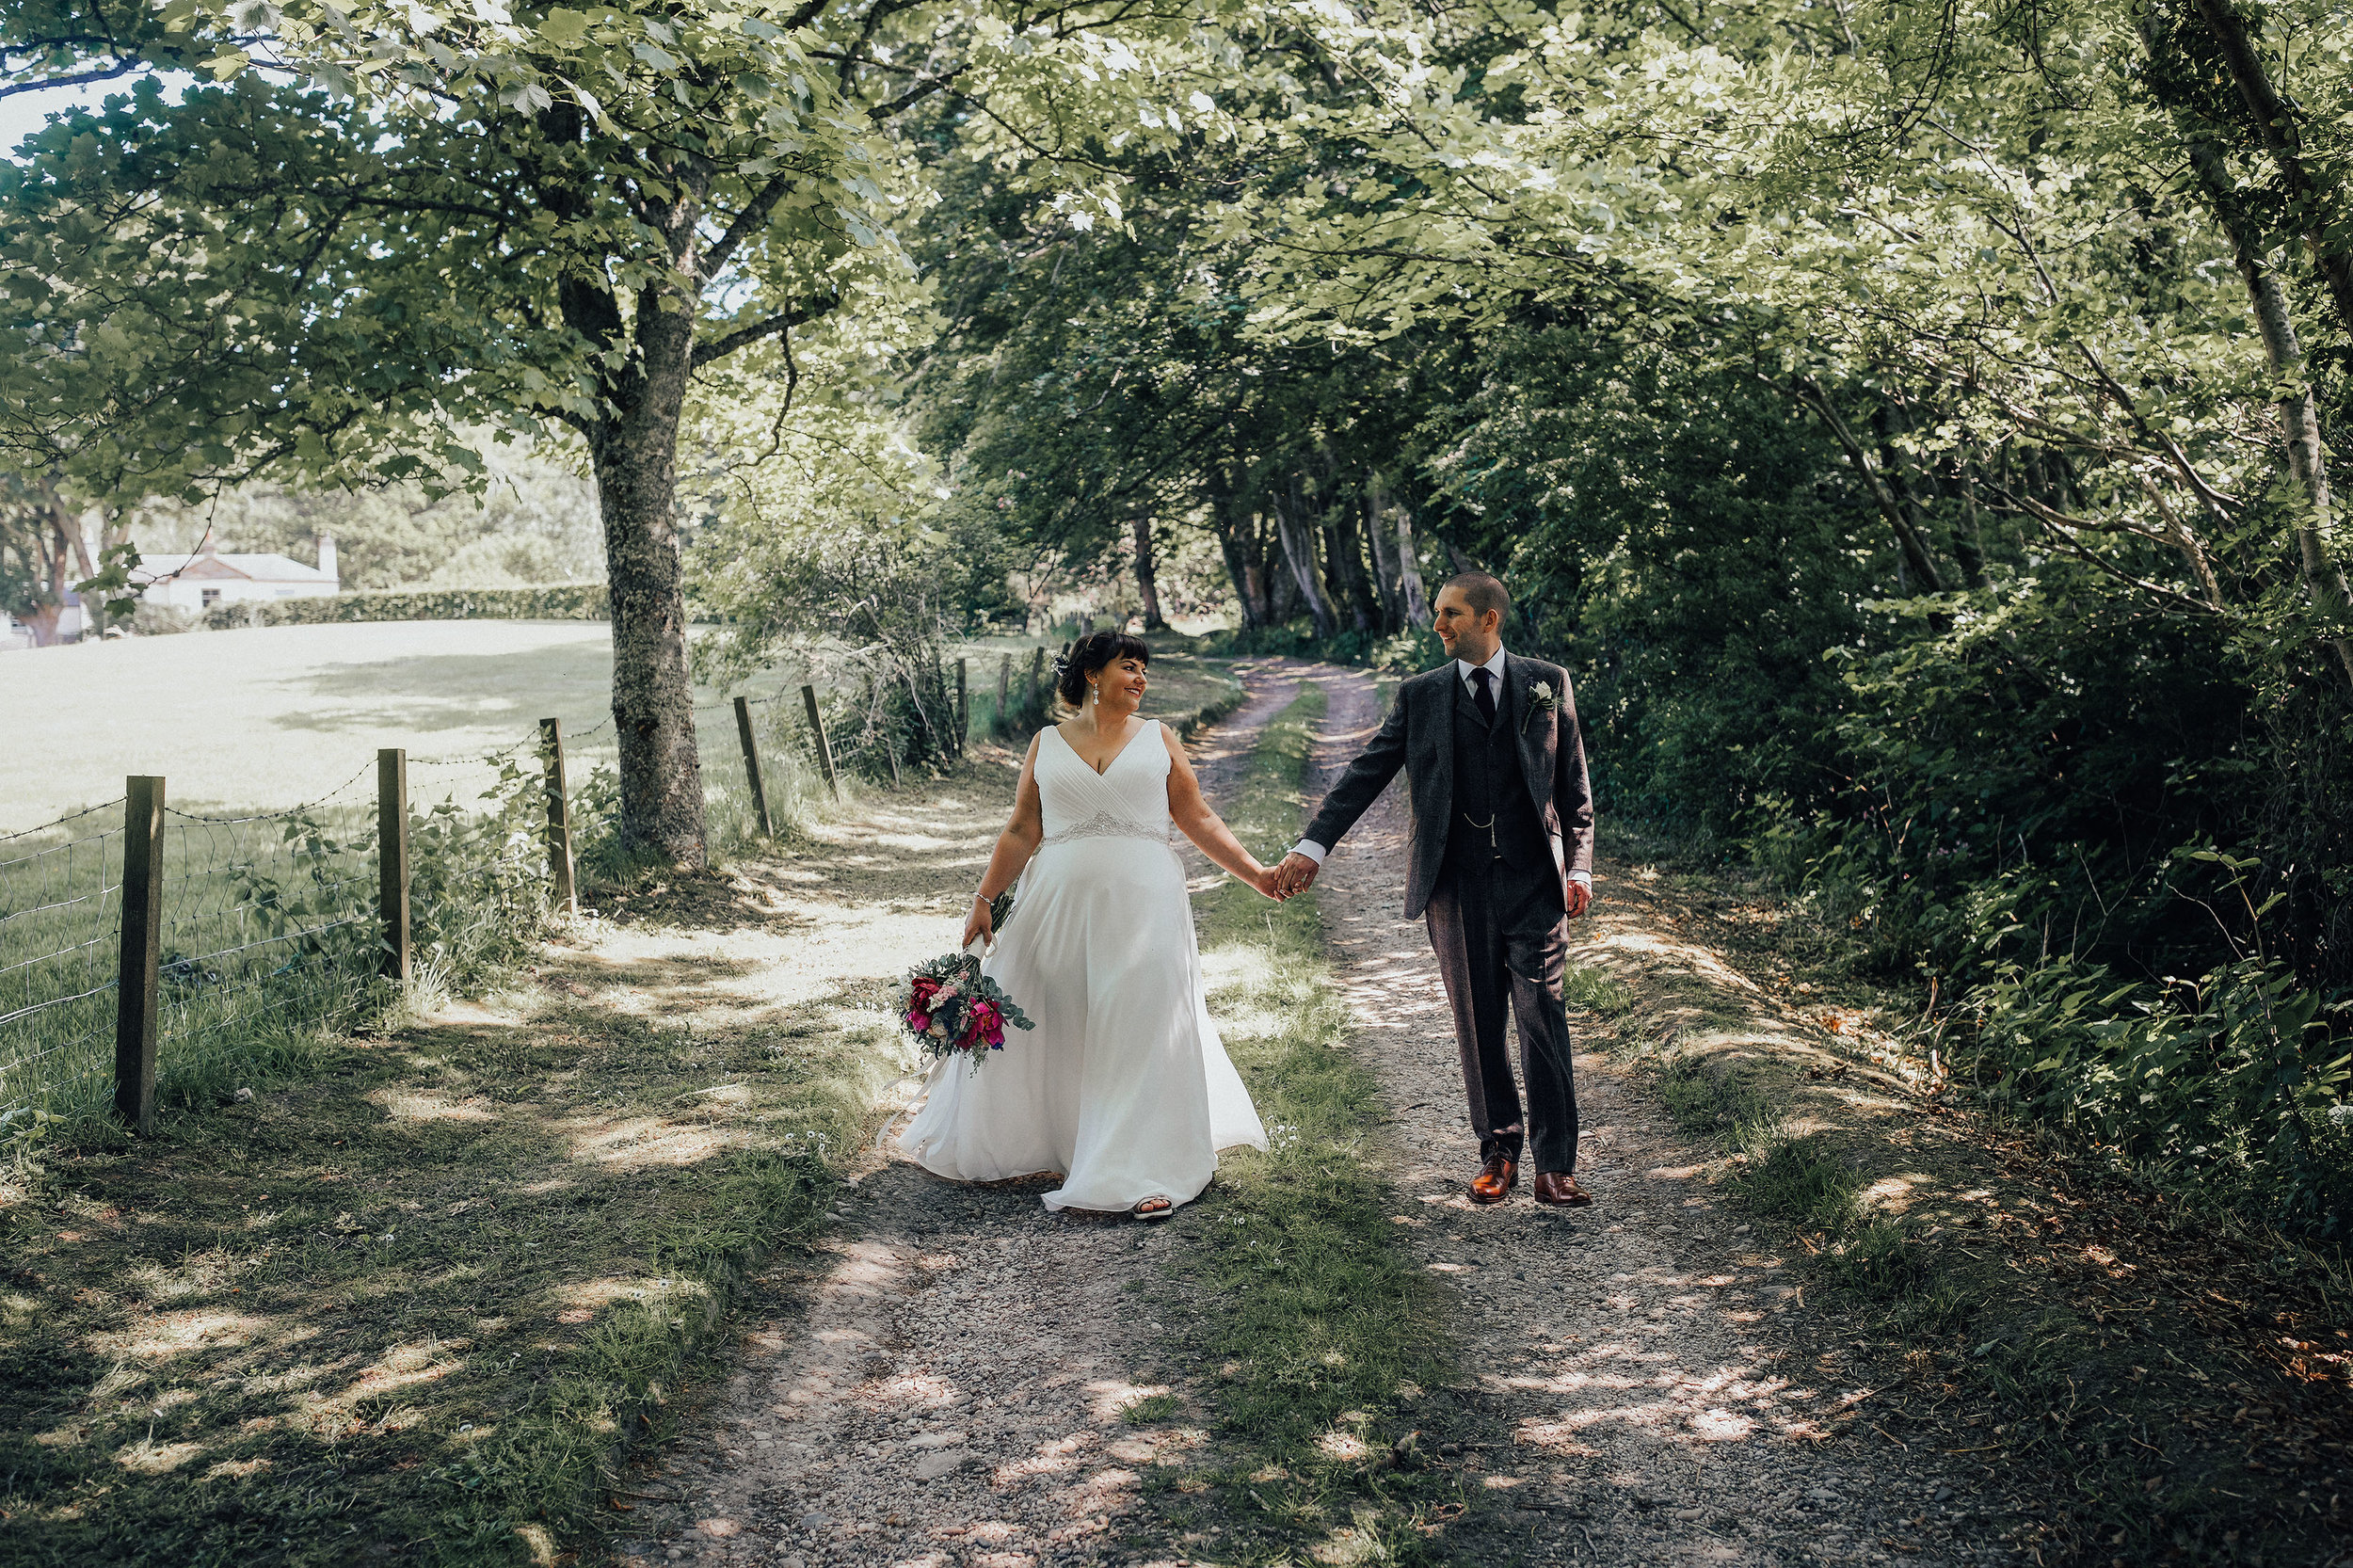 SCOTTISH_ELOPEMENT_PHOTOGRAPHER_PJ_PHILLIPS_PHOTOGRAPHY_93.jpg